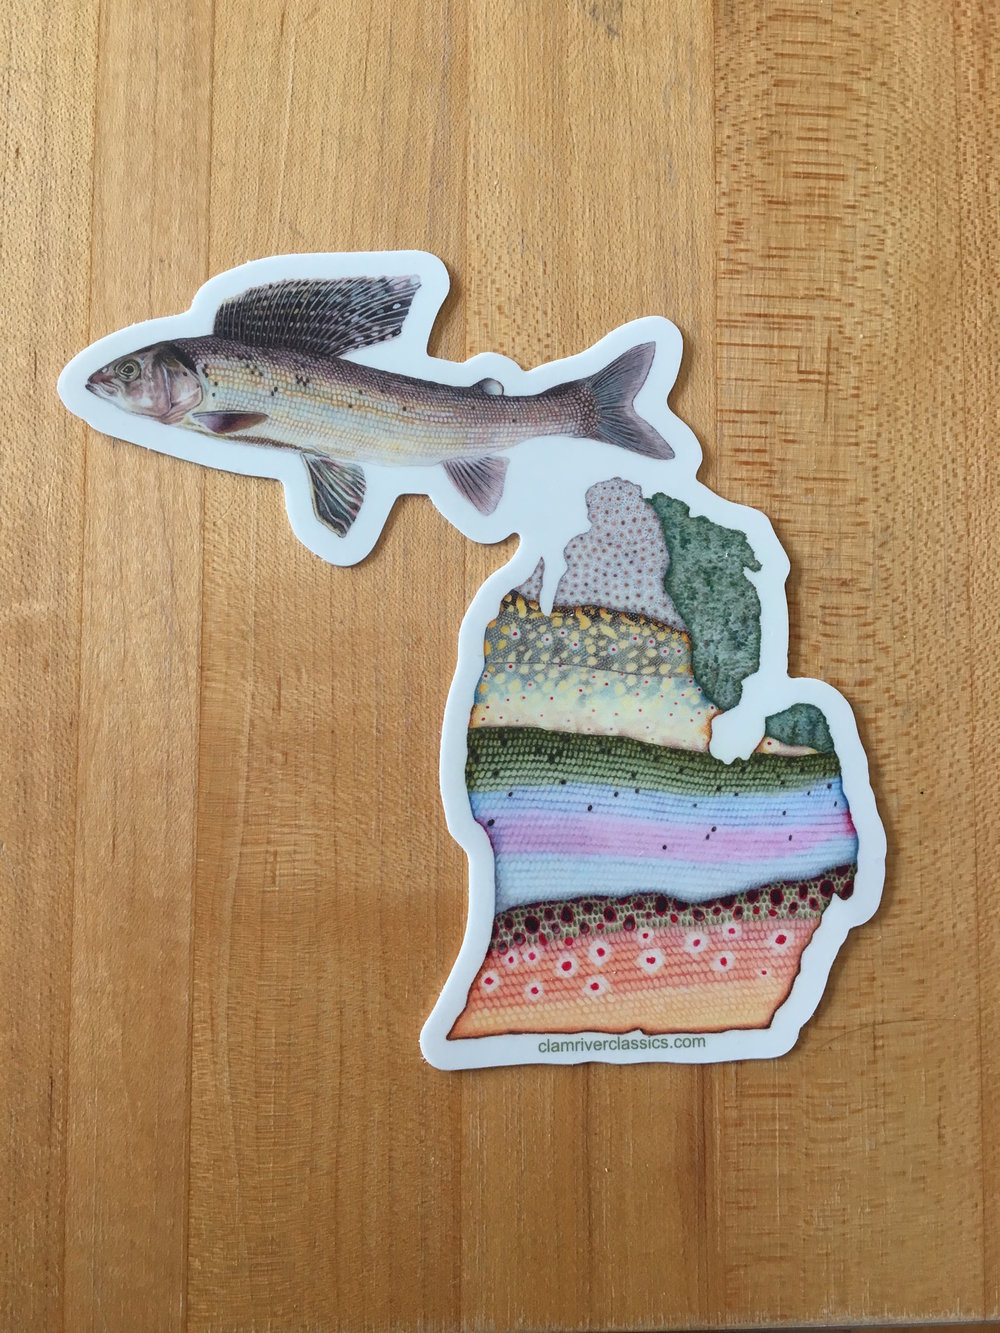 "This sticker is made from one of my drawings, which was used as the cover illustration for the book ""In Search of the Lost Grayling,"" written by my friend Kirk."